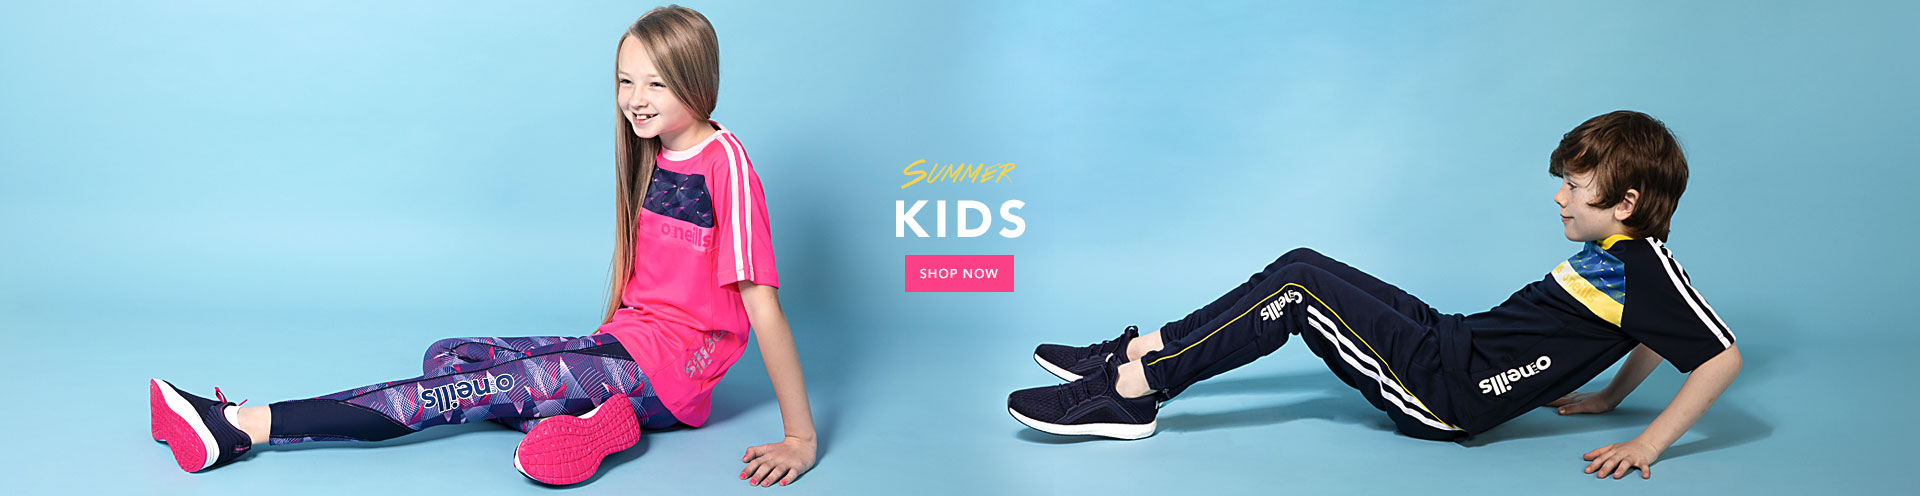 18dc2de1e Kids Clothes & Kids Sportswear | O'Neills Boys & Girls Clothes